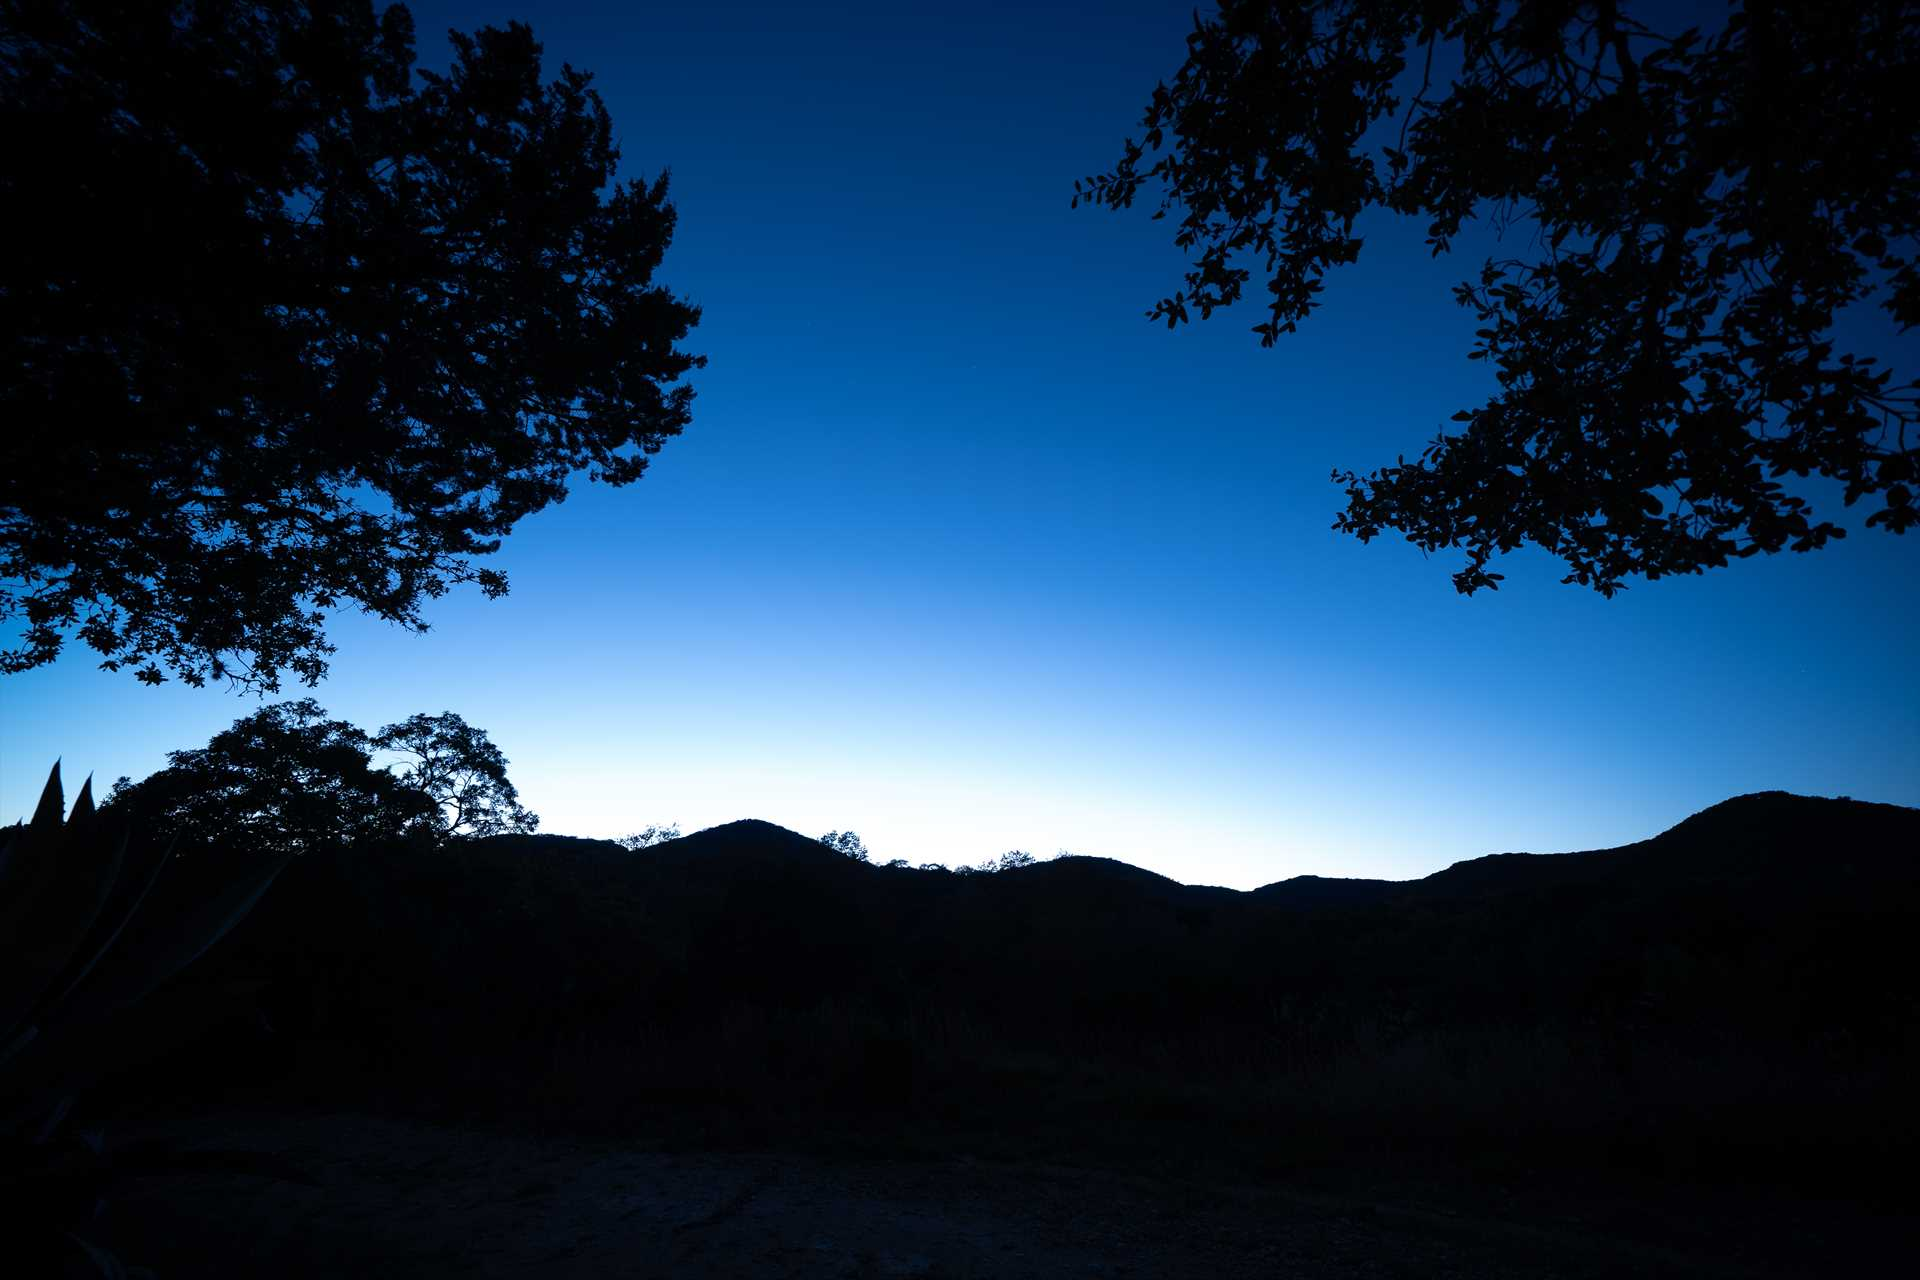 Glorious sunsets over the Hill Country mountains are followed by star-filled skies-a sky watcher's delight!